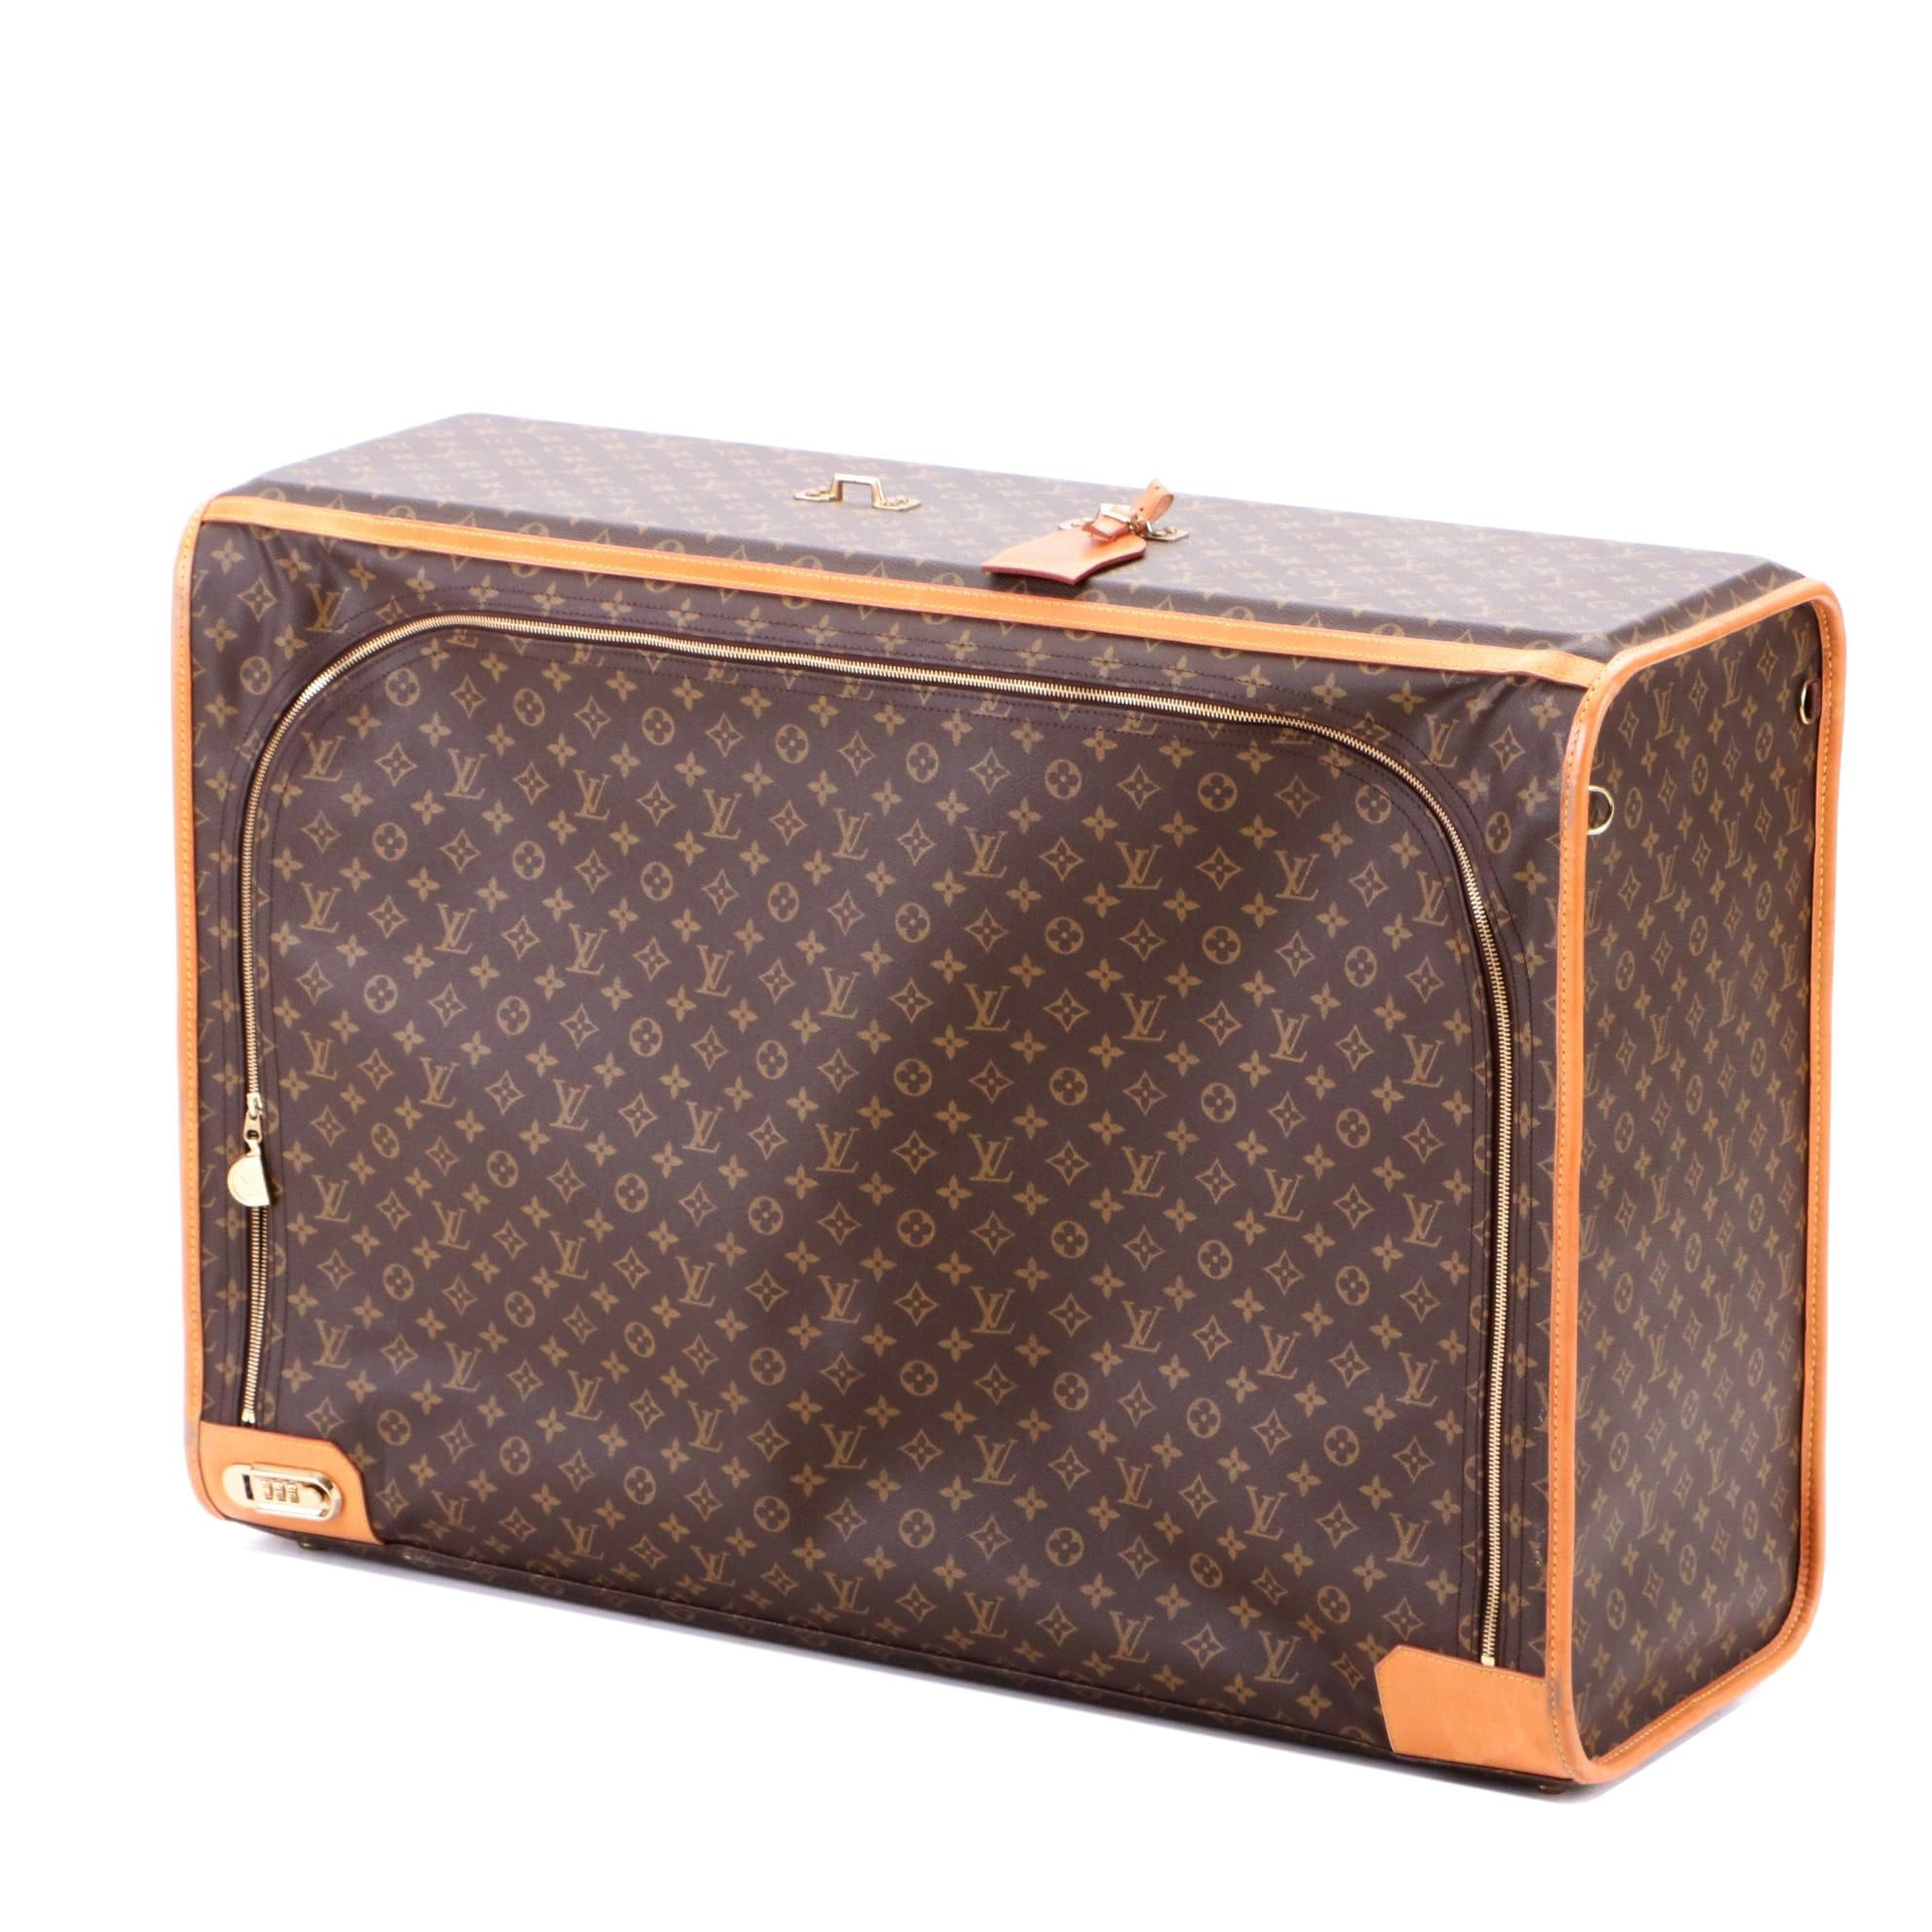 1995 Louis Vuitton Monogram Canvas Suitcase